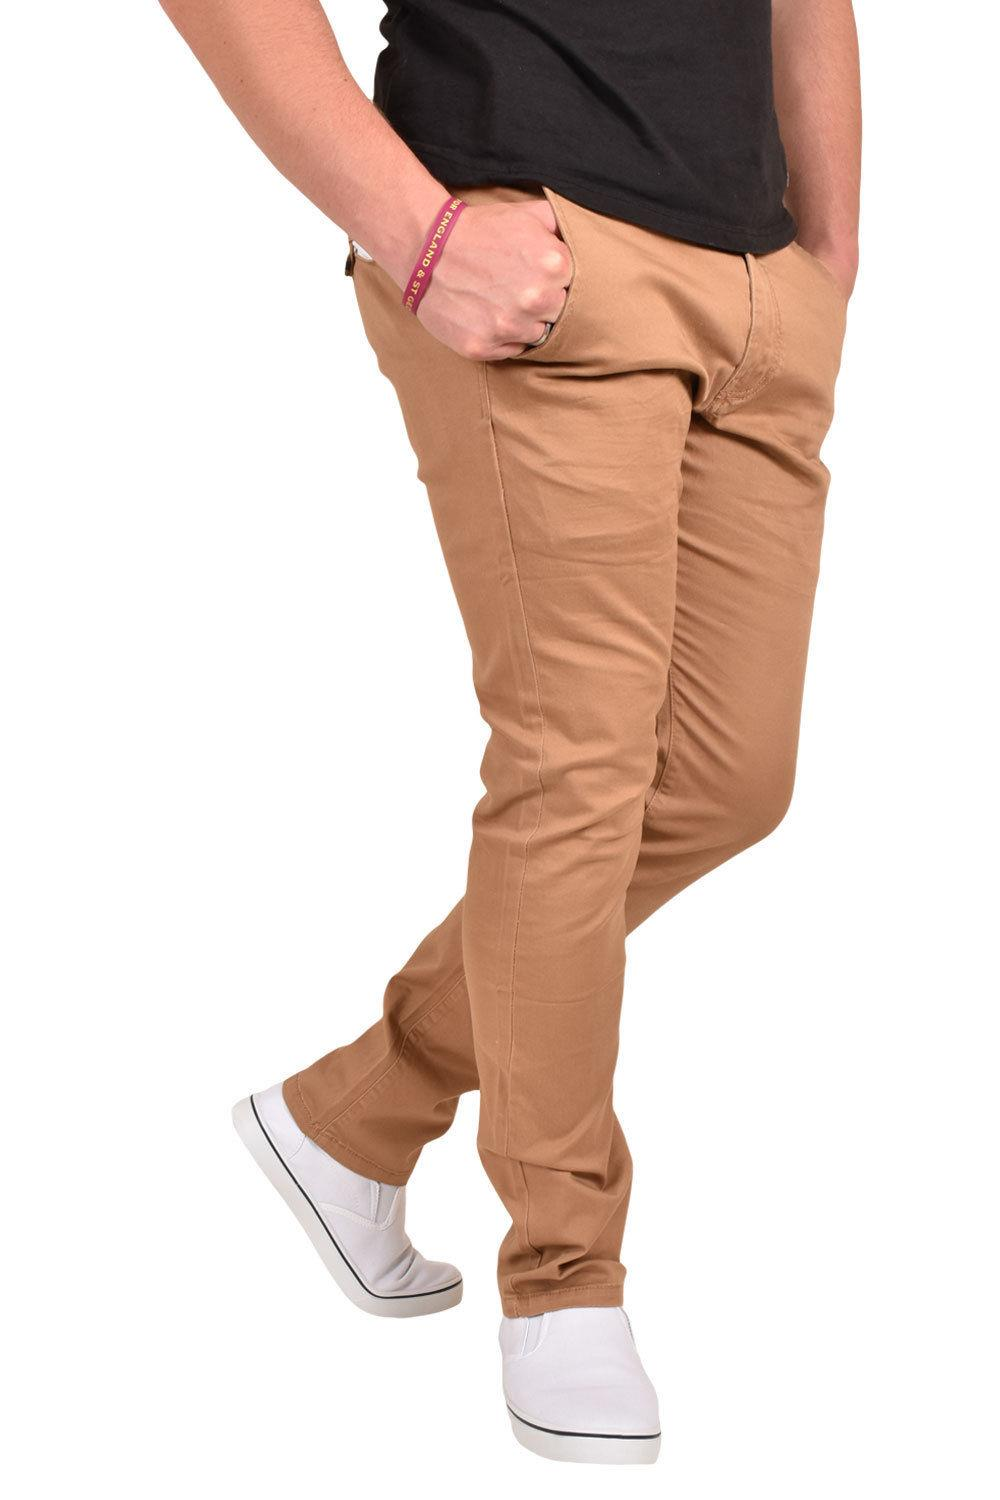 New-Mens-Designer-Jacksouth-Chino-Regular-Fit-Stretch-Cotton-Rich-Twill-Trousers thumbnail 39